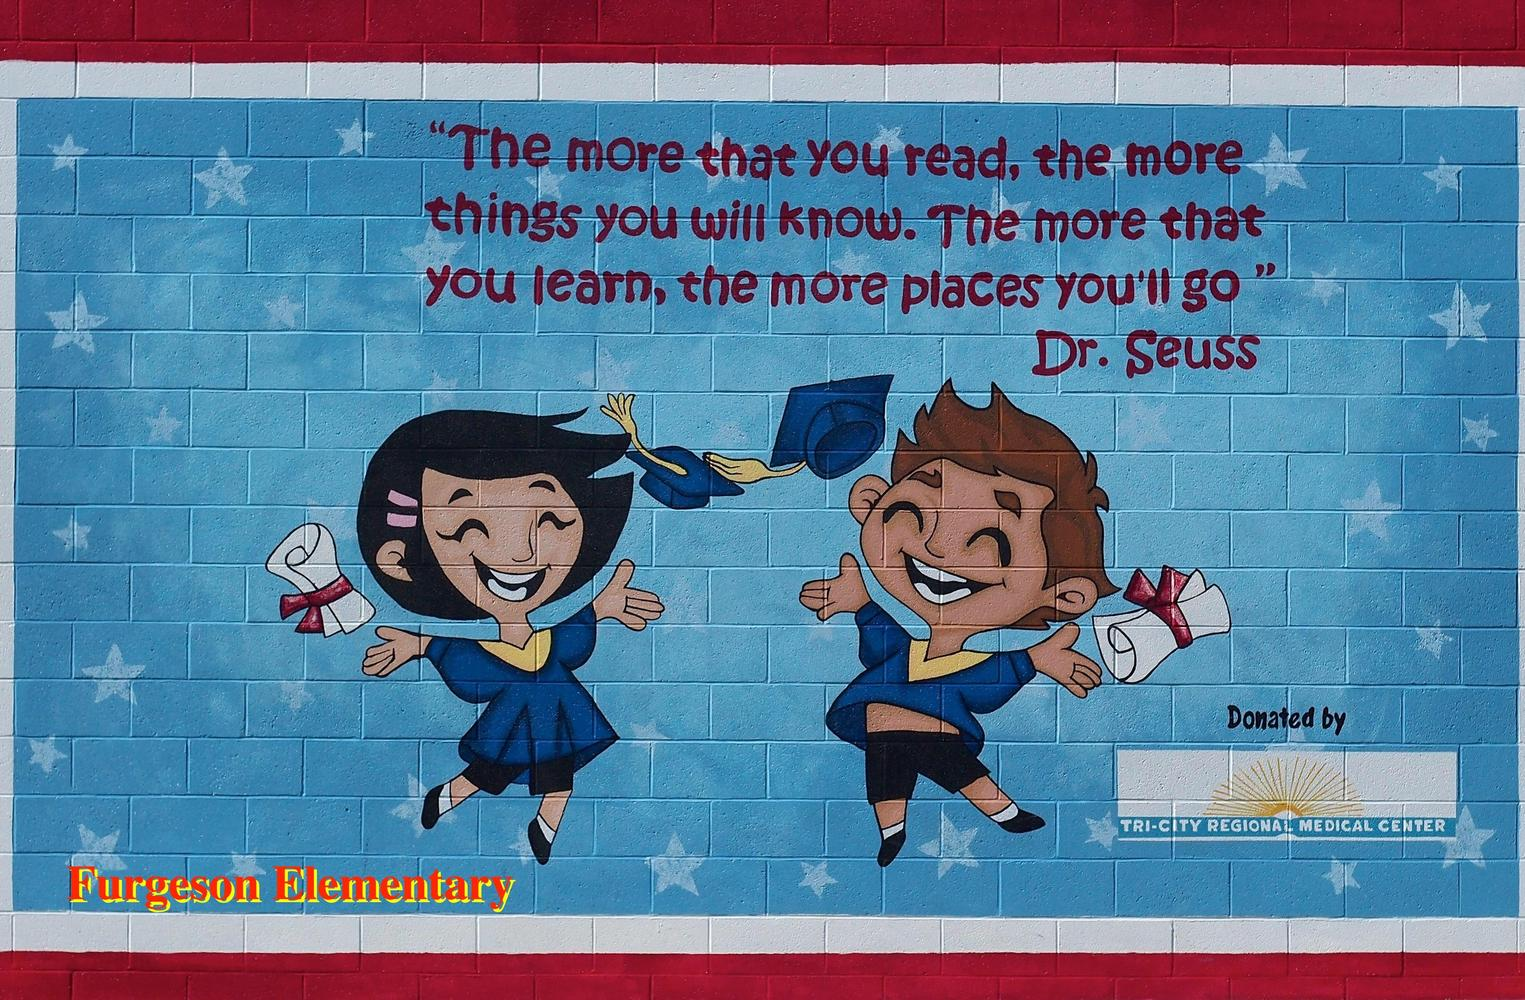 picture of handball wall with picture of boy and girl with Dr. Seus quote